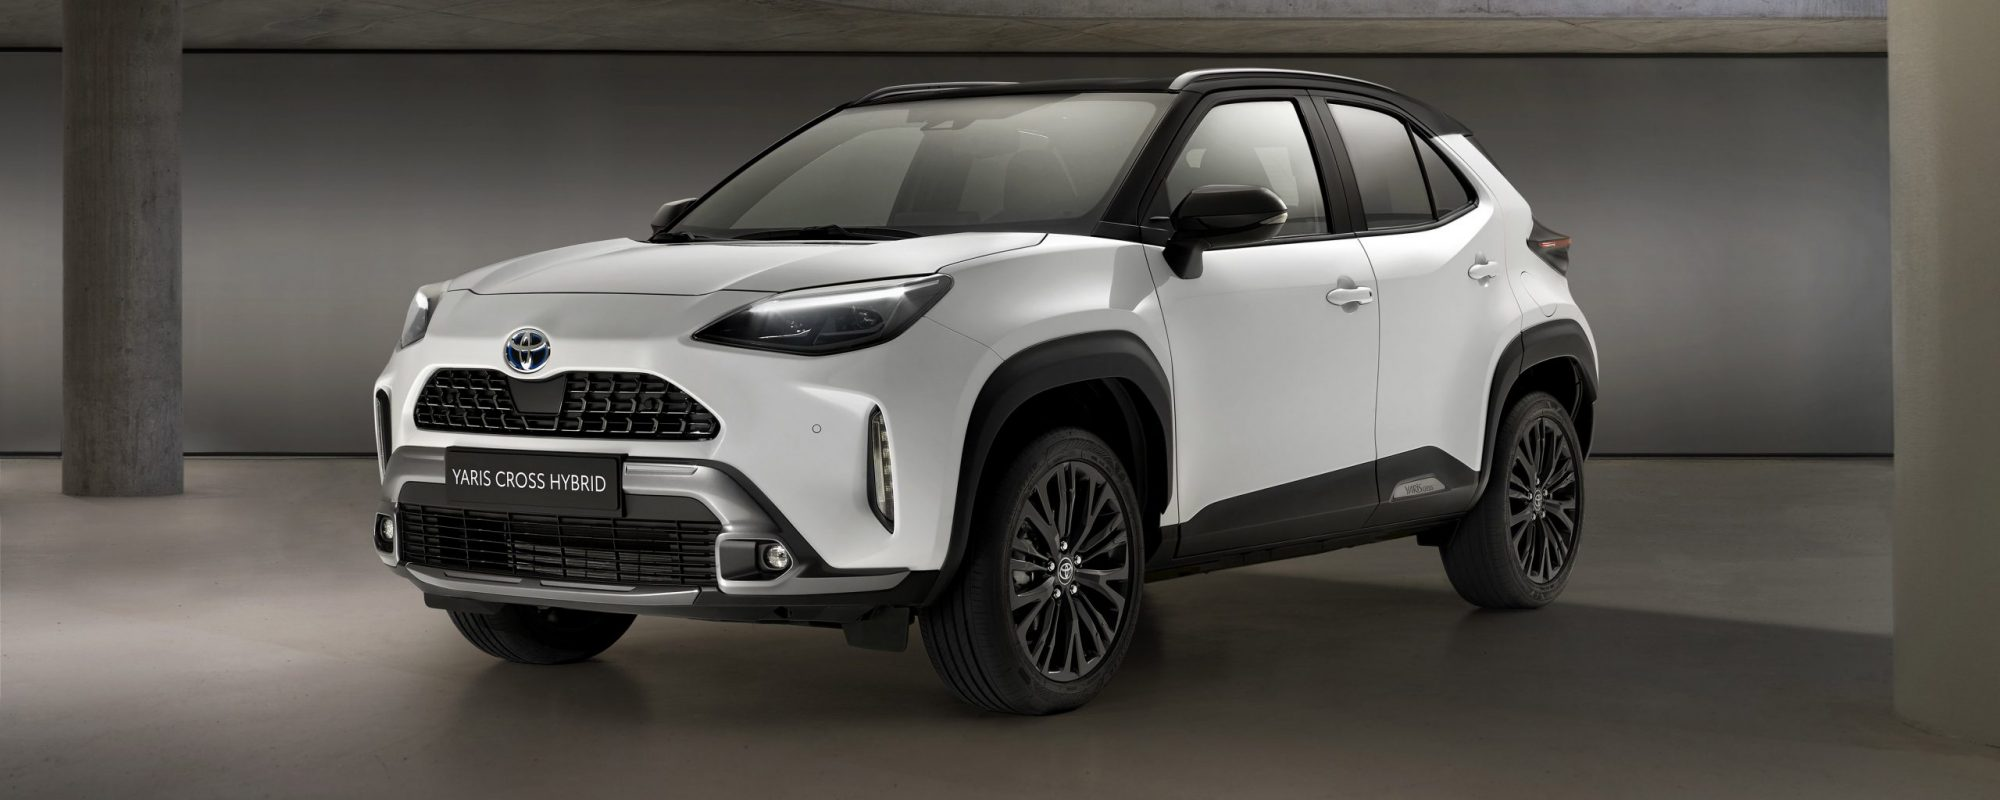 Toyota onthult extra stoere Yaris Cross Adventure